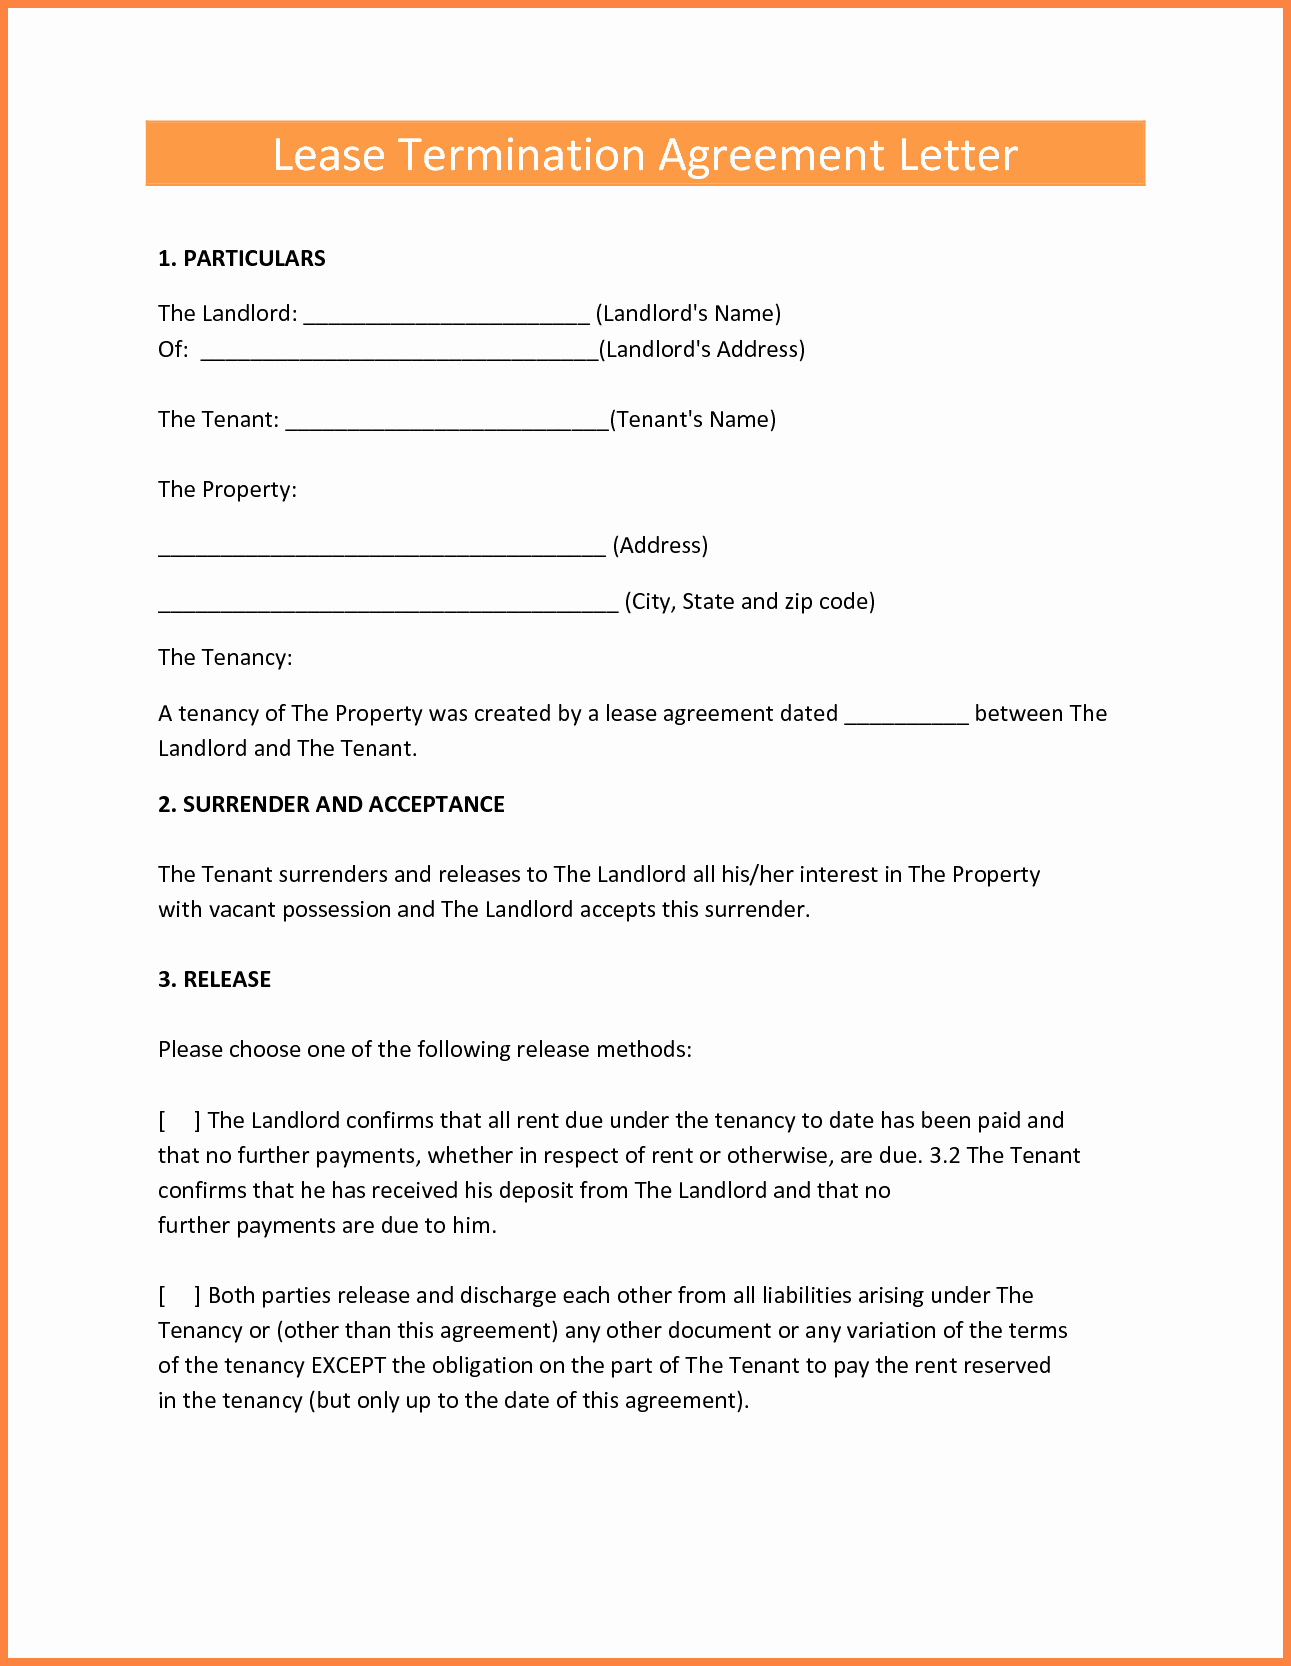 Lease Termination Agreement Template New 7 Early Termination Of Lease Agreement by Landlord